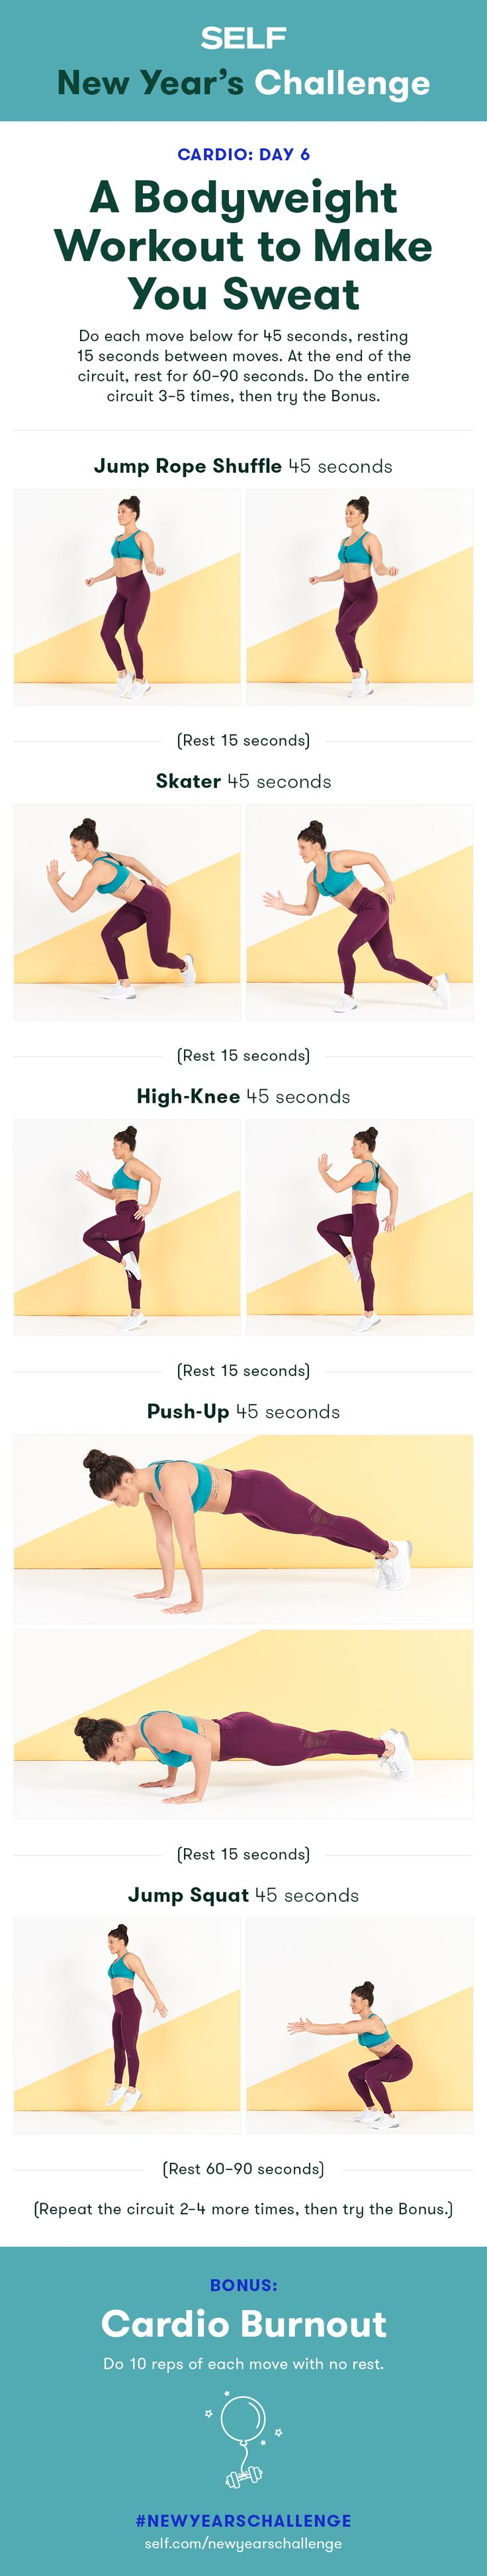 Welcome to our #NewYearsChallenge! Try this no-equipment cardio workout for women with high knees and jump squats!